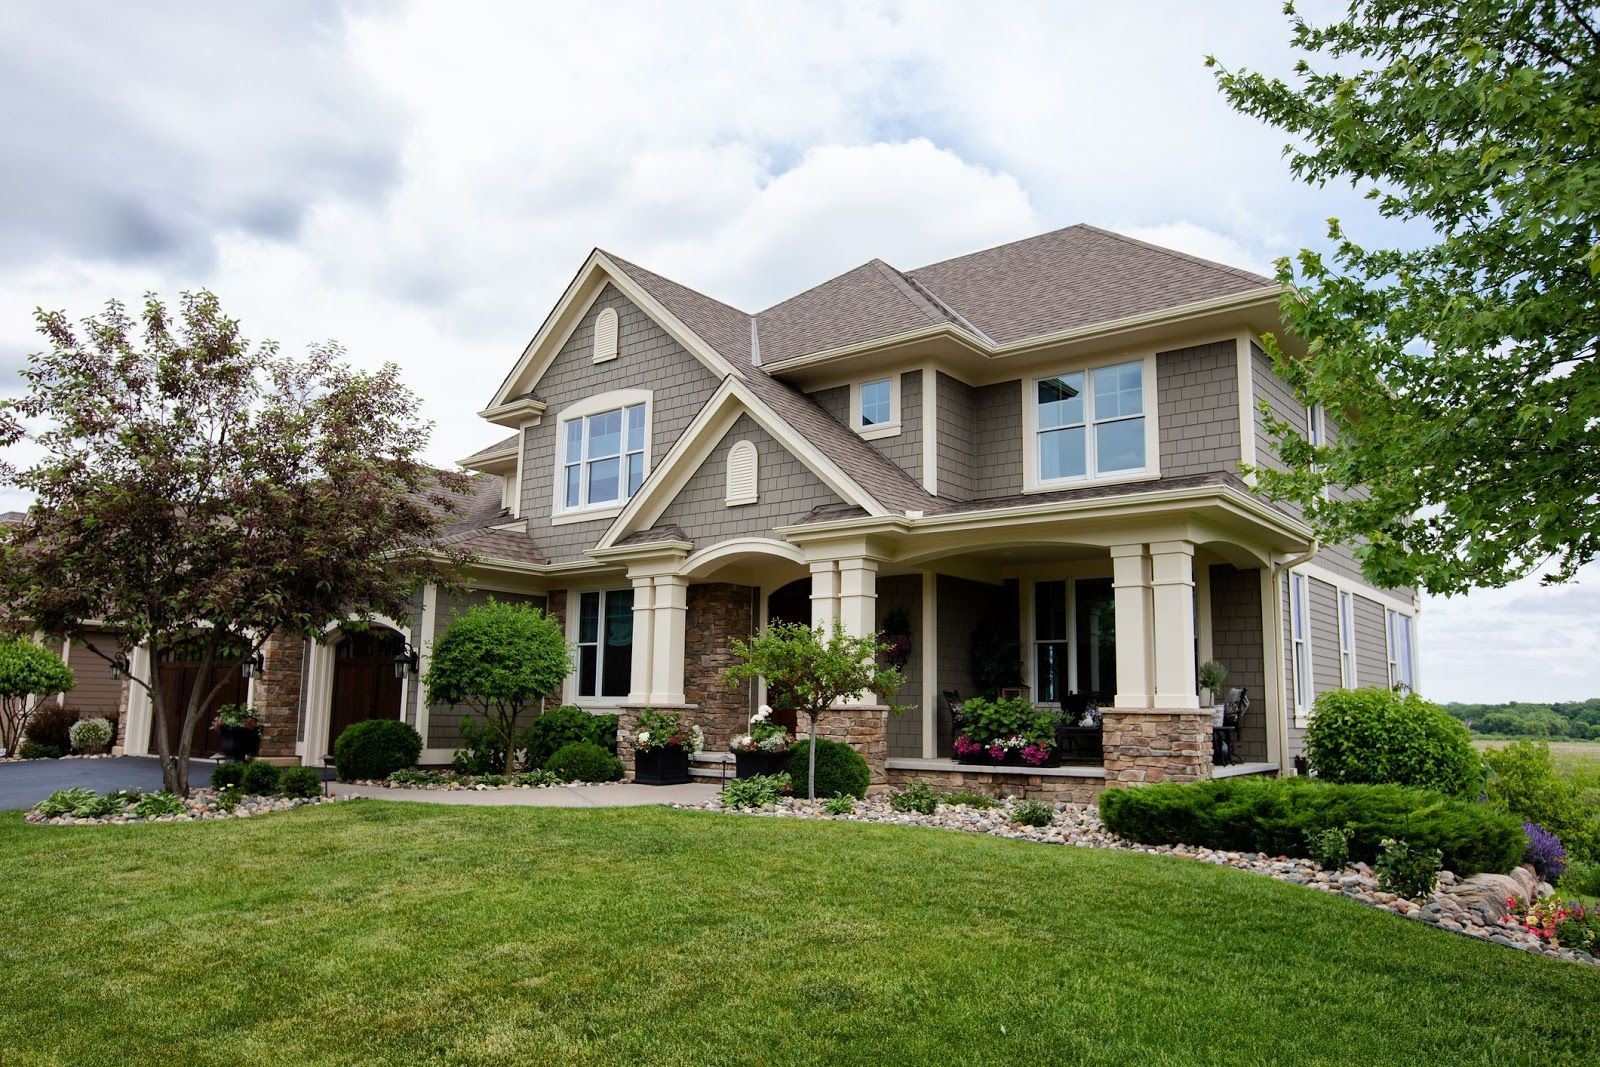 Should You Buy a House During the Coronavirus Pandemic?